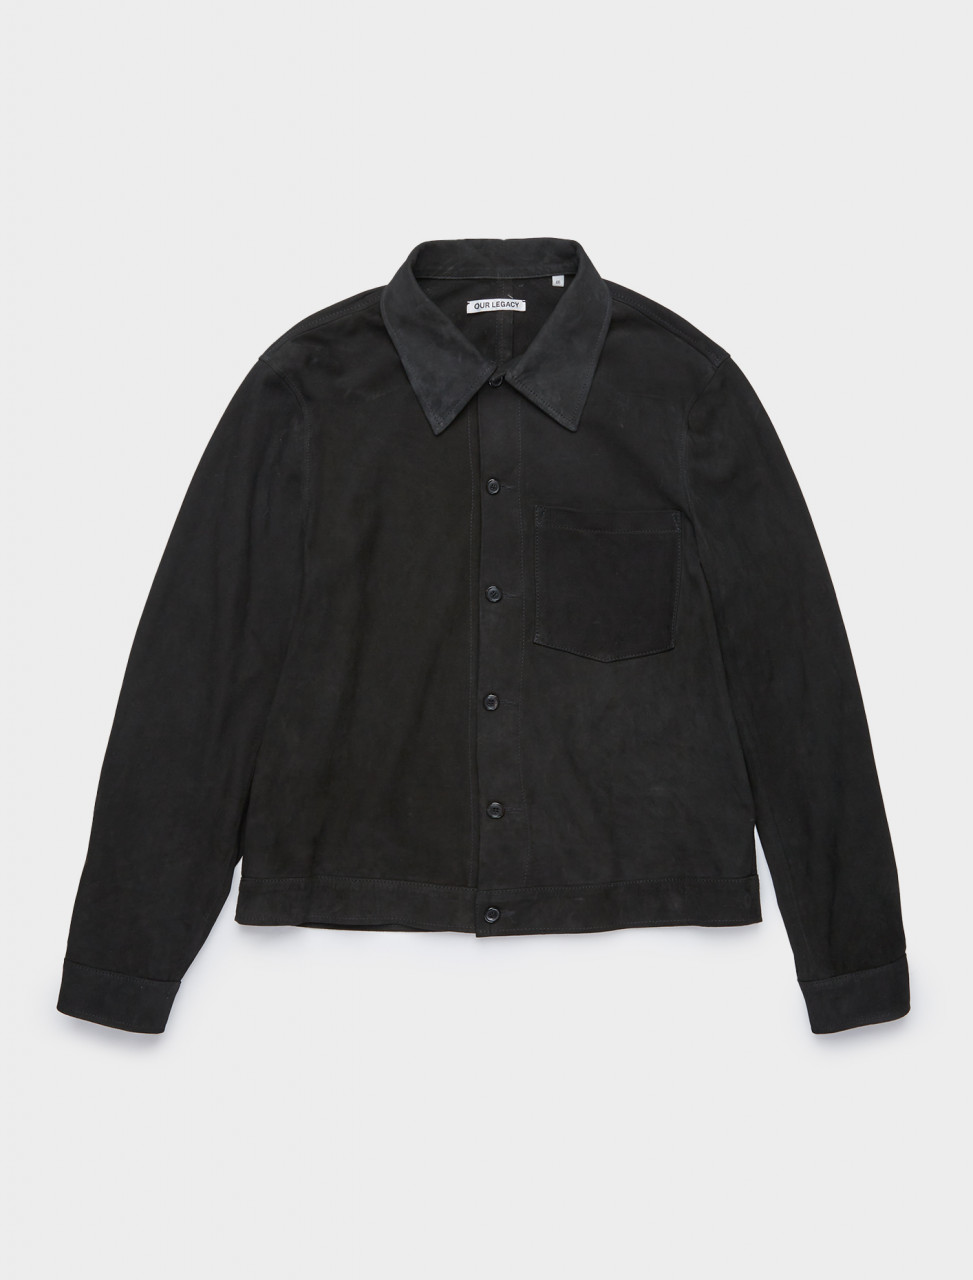 150-MR199NB OUR LEGACY REINCARNATION SUEDE SHIRT BLACK